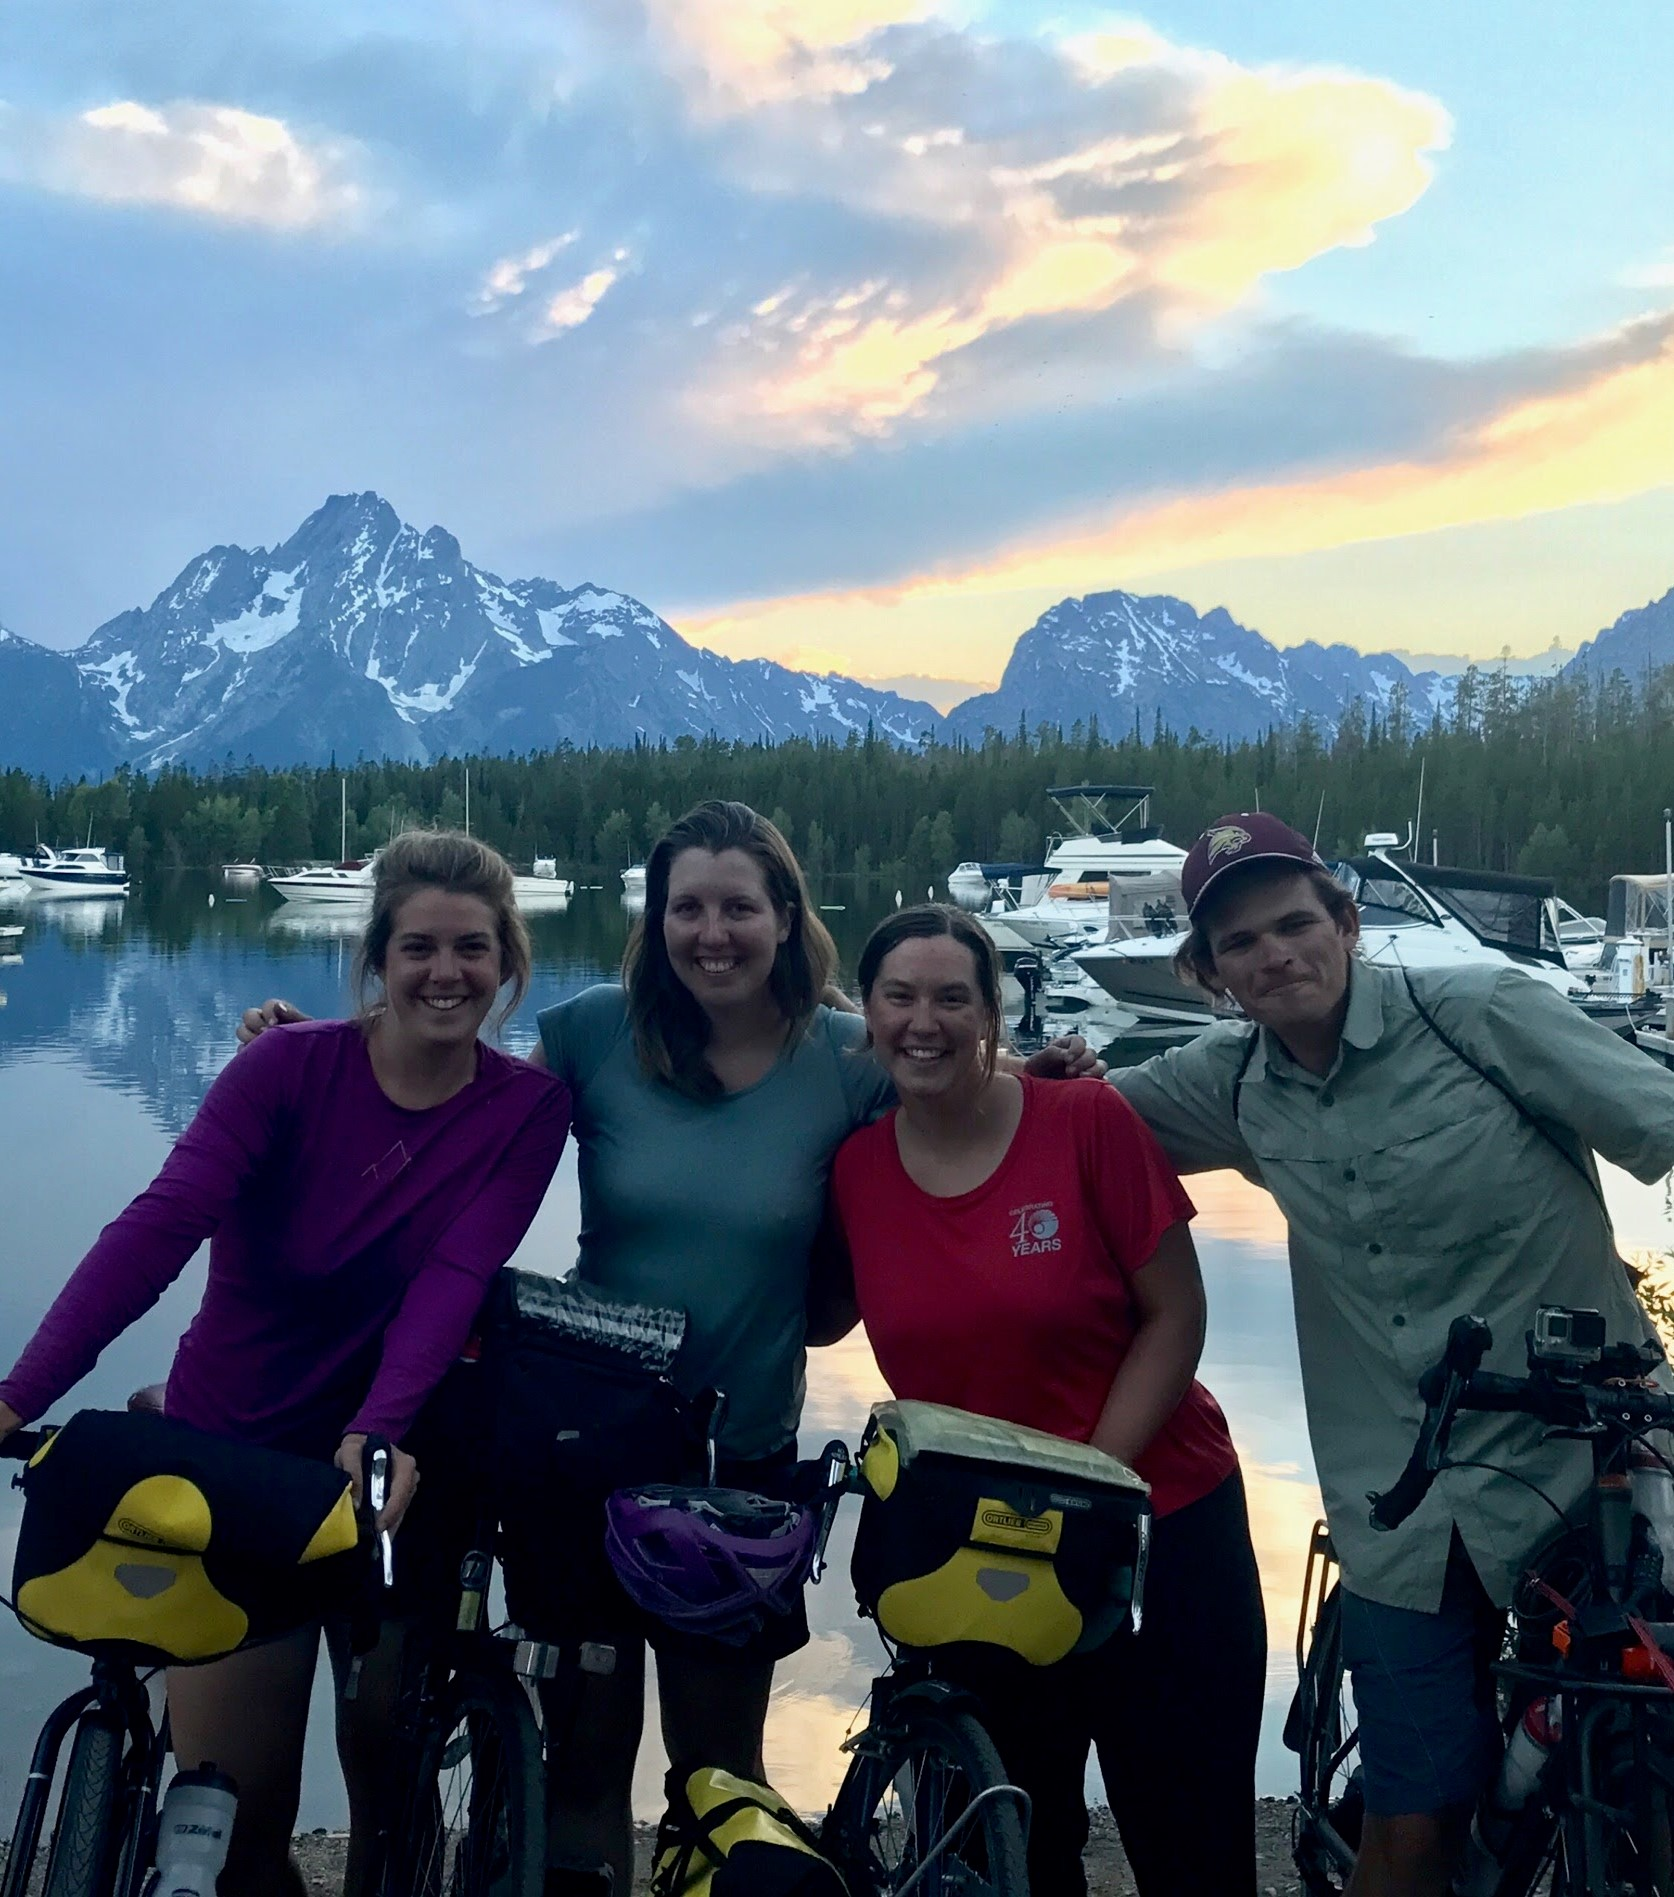 """Upon meeting and joining other cyclists, I felt a sense of ease, connection, and companionship. The journey turned into a shared adventure."" -"